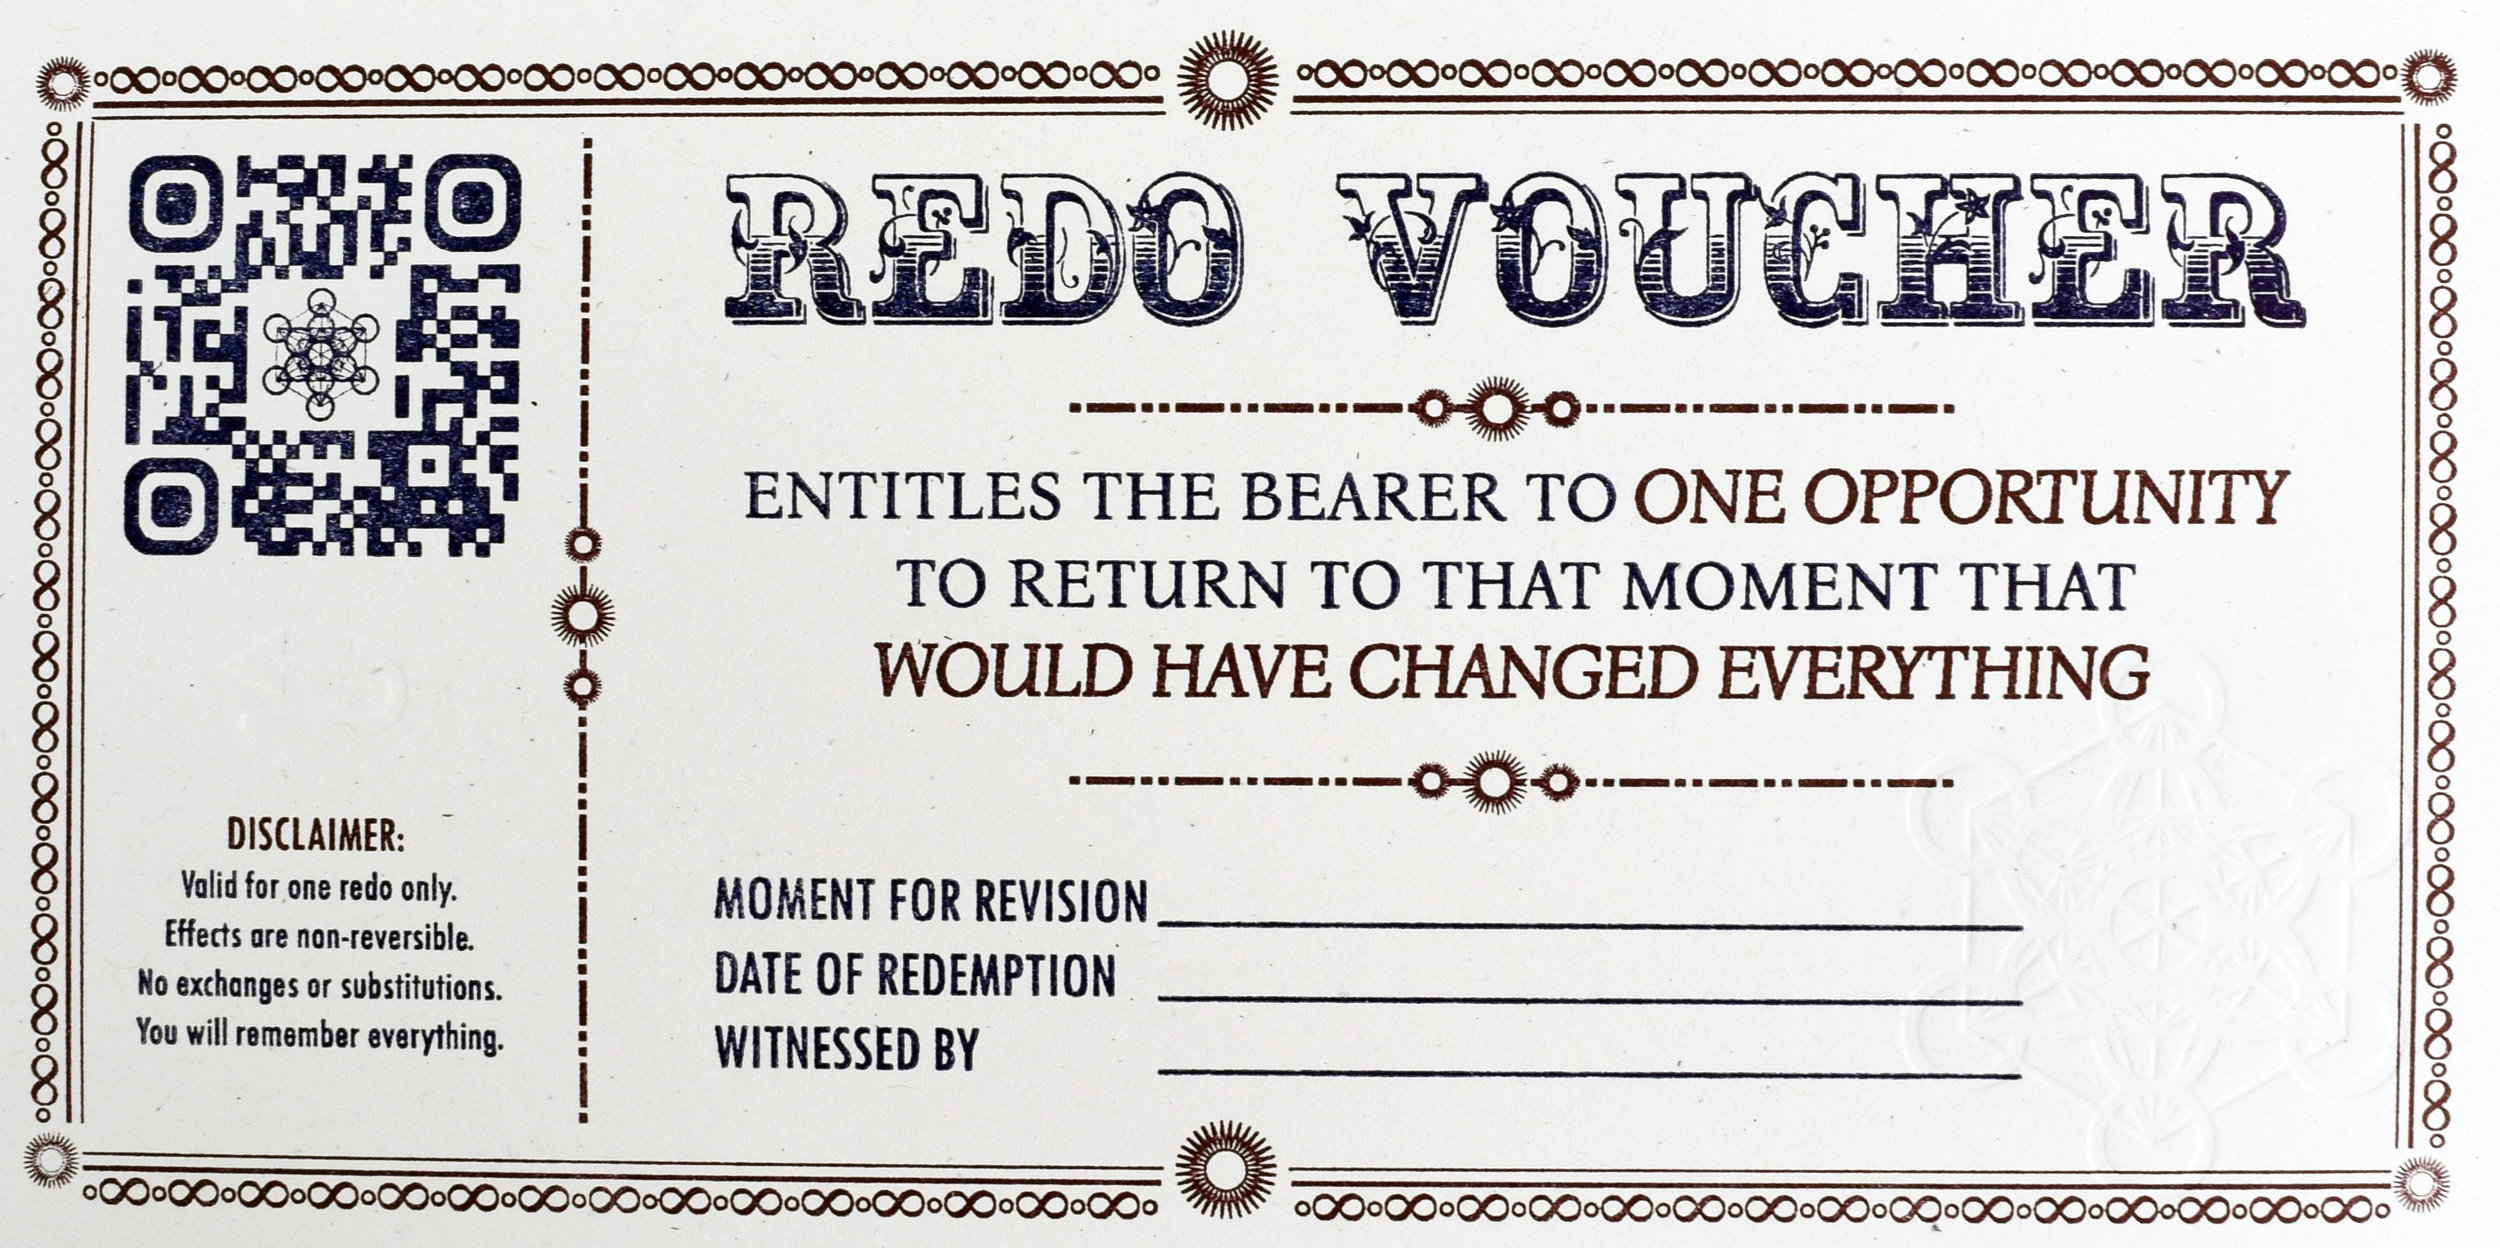 Redo_Voucher_Printed_cropped.jpg